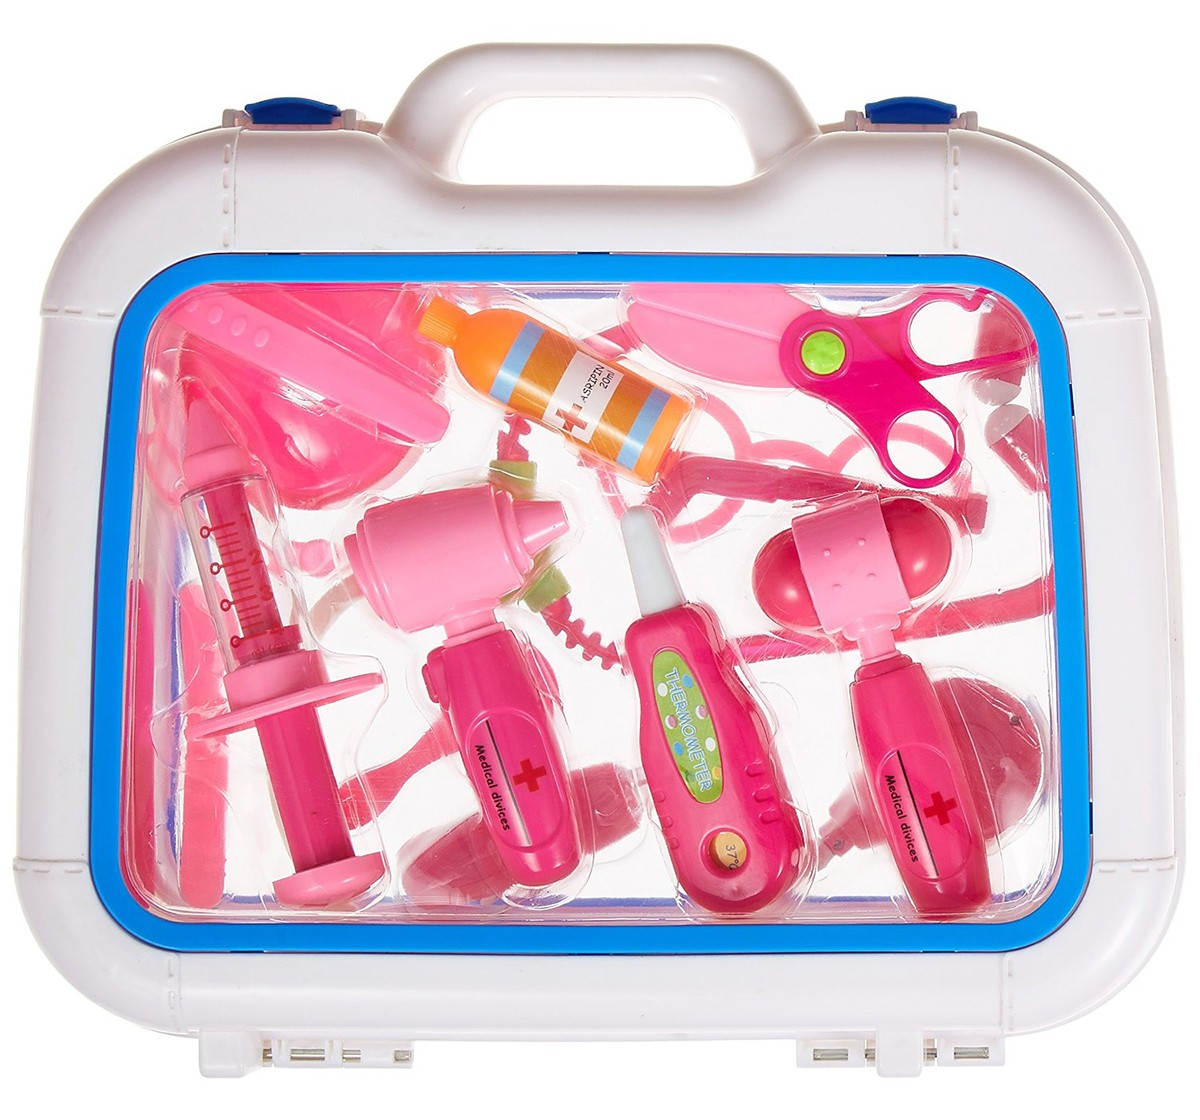 Comdaq Roleplay Doctor Set for Kids age 5Y+ (Pink)